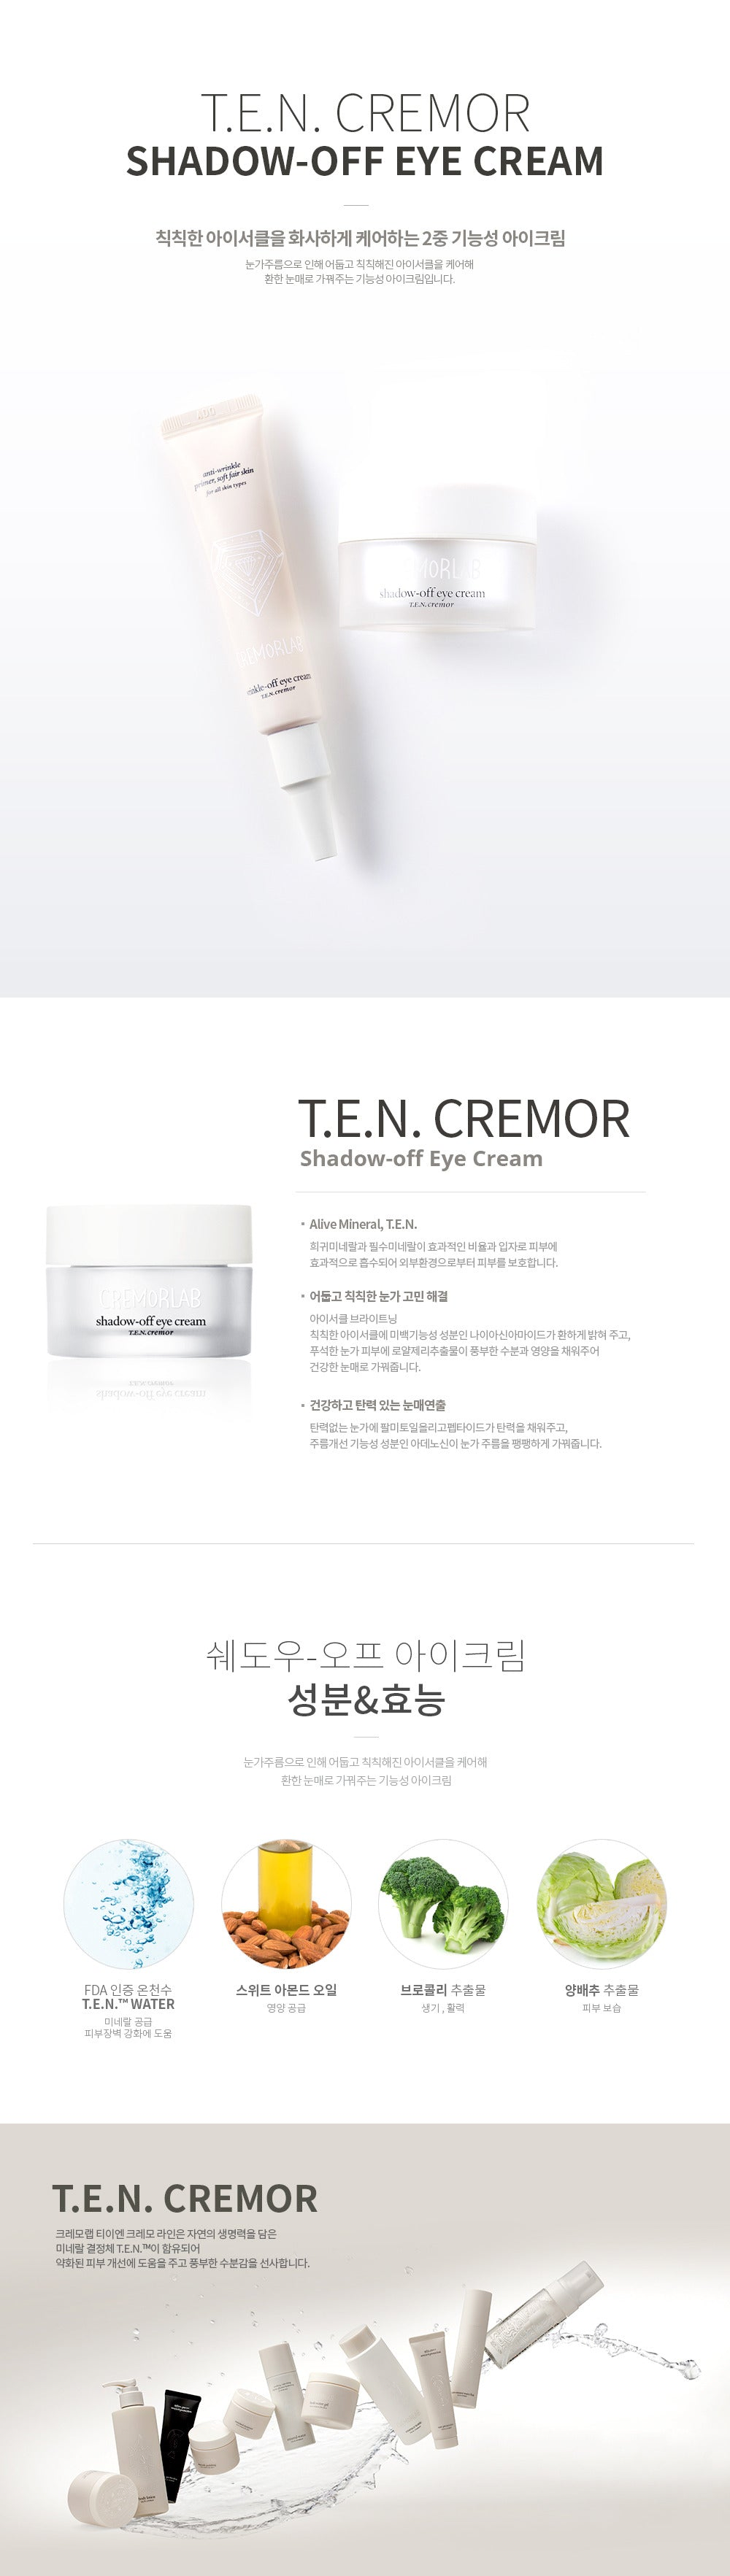 Cremorlab - Shadow-Off Eye Cream